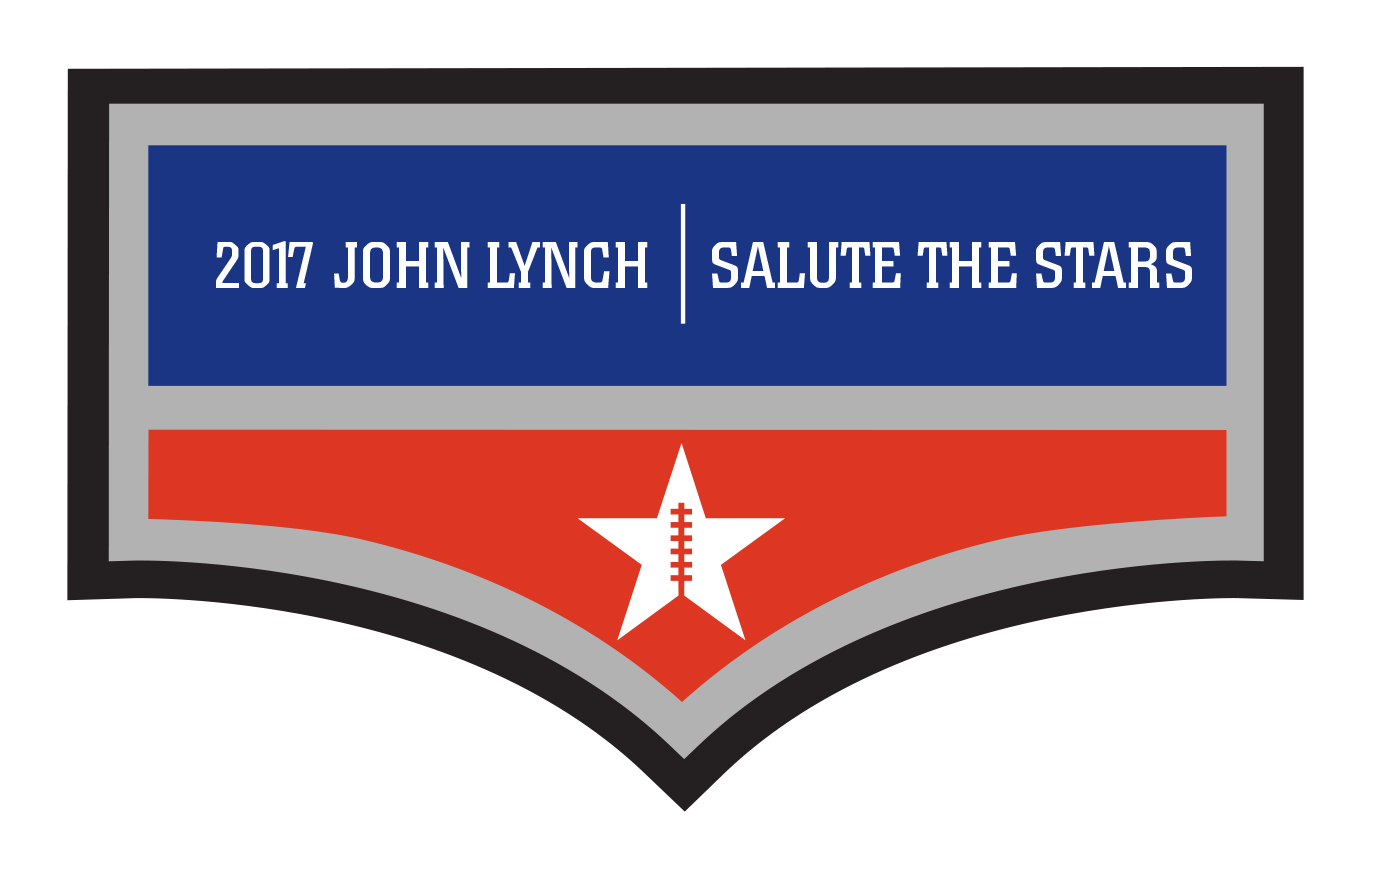 john lynch foundation salute the stars